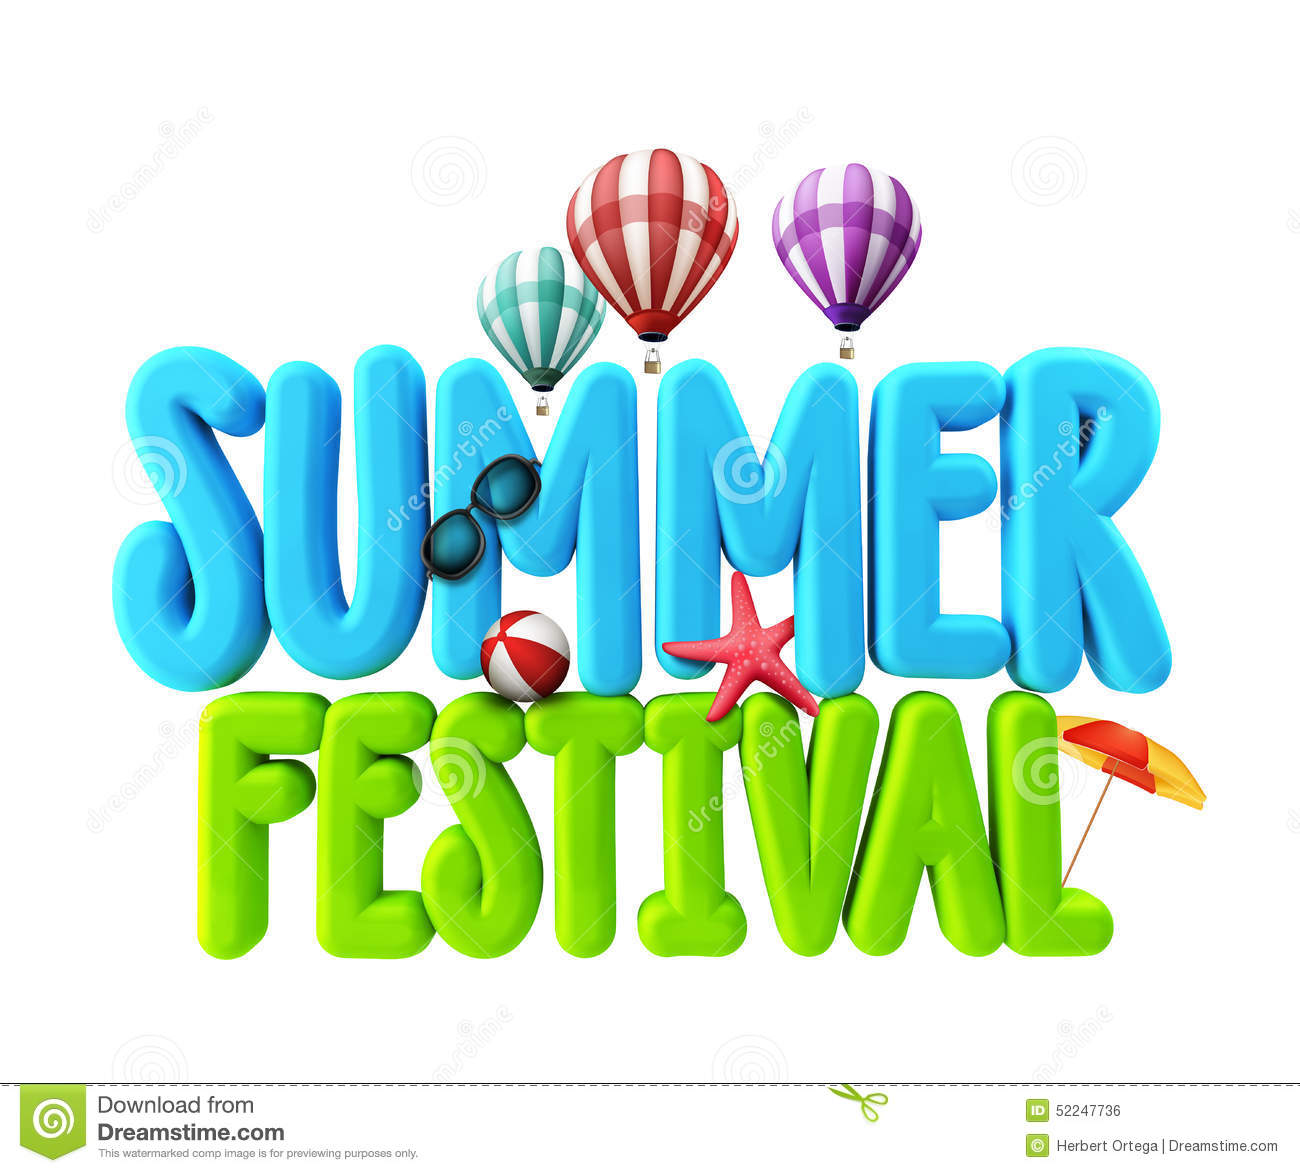 Festival clipart. Summer panda free images